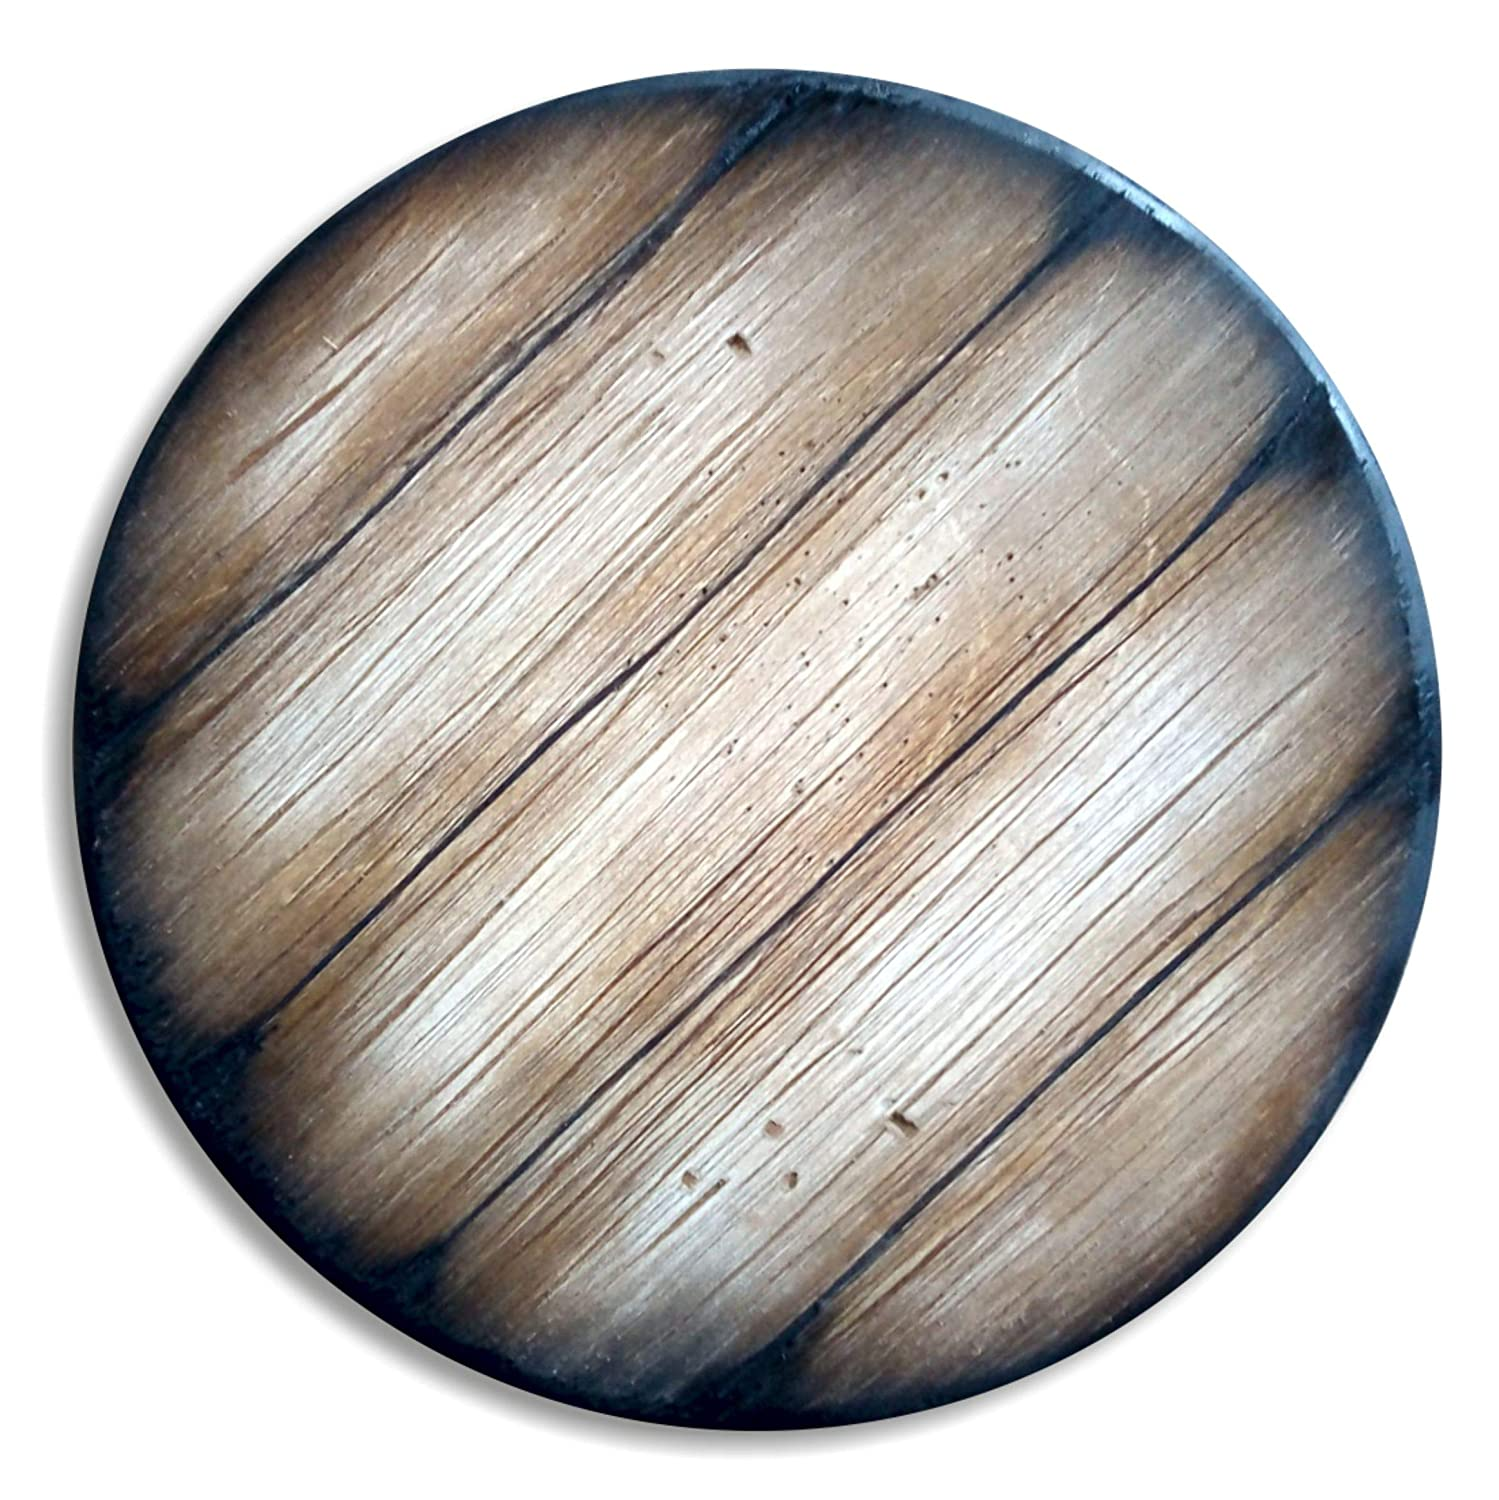 Round Table Top Inspired by Old Wine, Whiskey & Beer Barrels, Size 24/30/36/40/46 Inch, Living Room Bar Kitchen Patio Wood Furniture, Antique Look, Handmade Aged Rustic Table